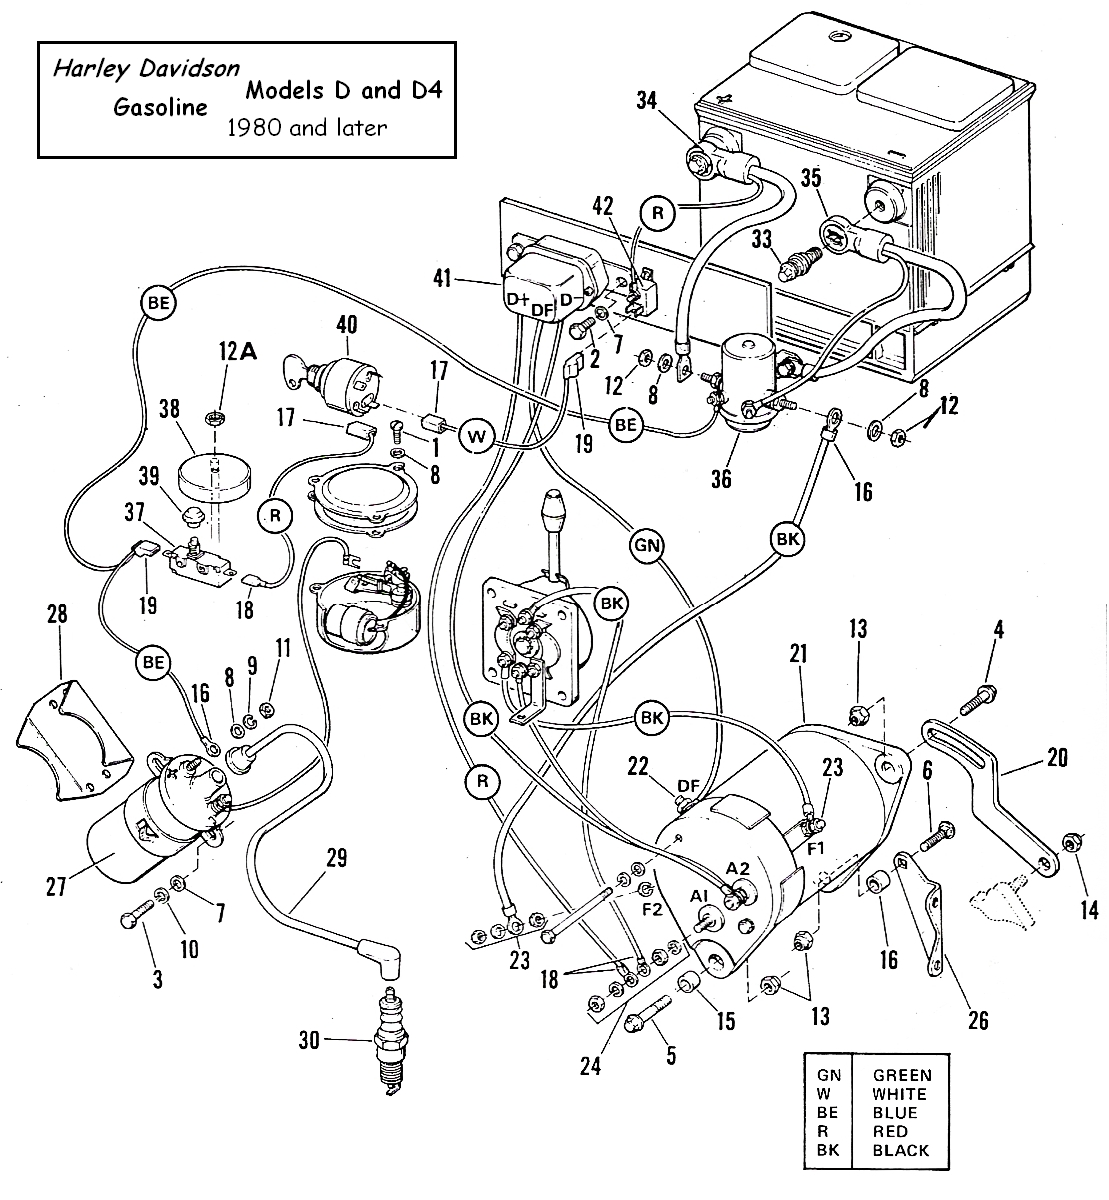 HG 101 for my ez go golf cart, need a wiring diagram readingrat net 1996 ezgo txt wiring diagram at webbmarketing.co